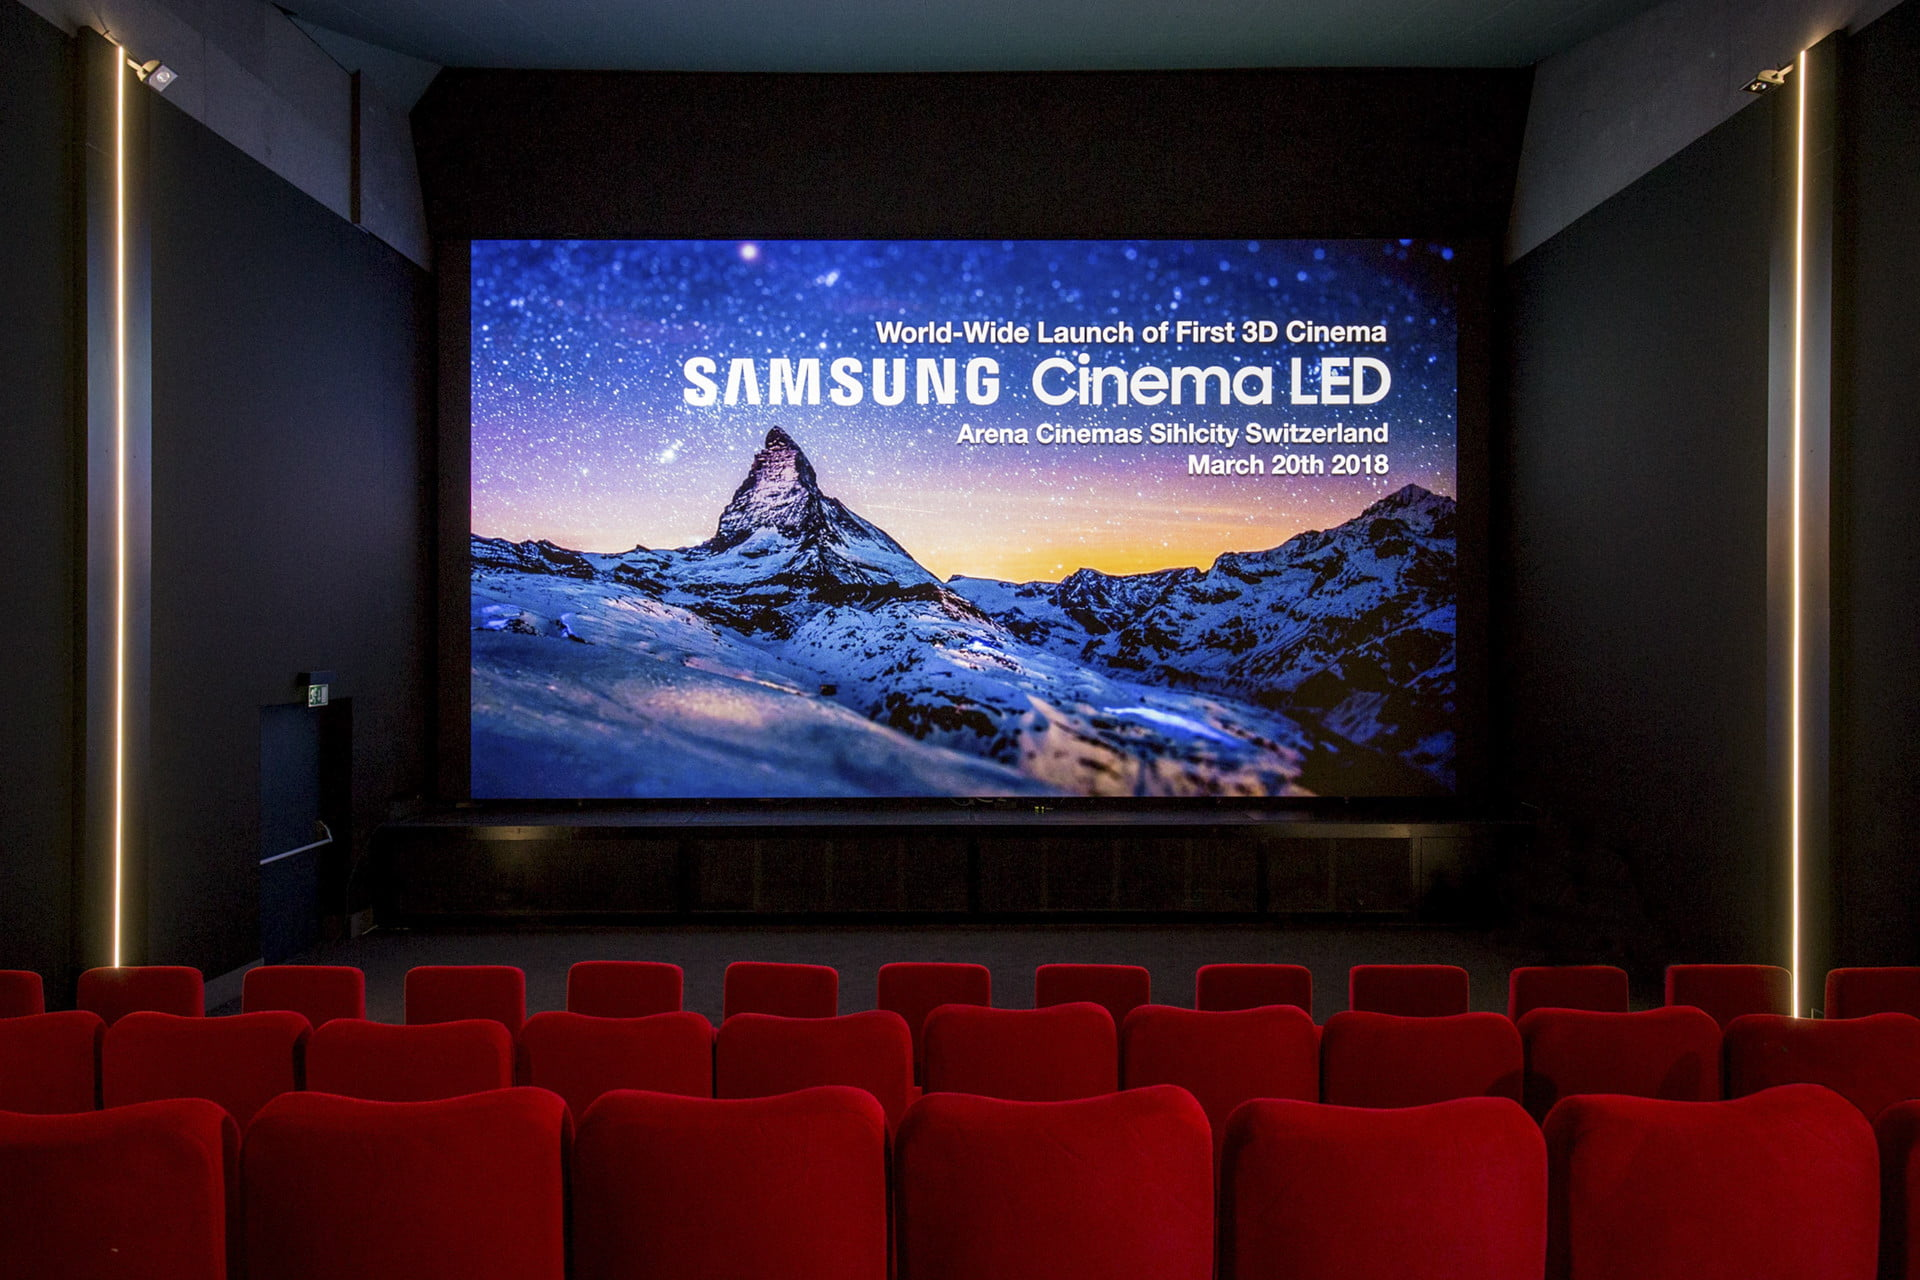 Samsung's 34-foot Onyx LED TV Could Change Movie Theaters